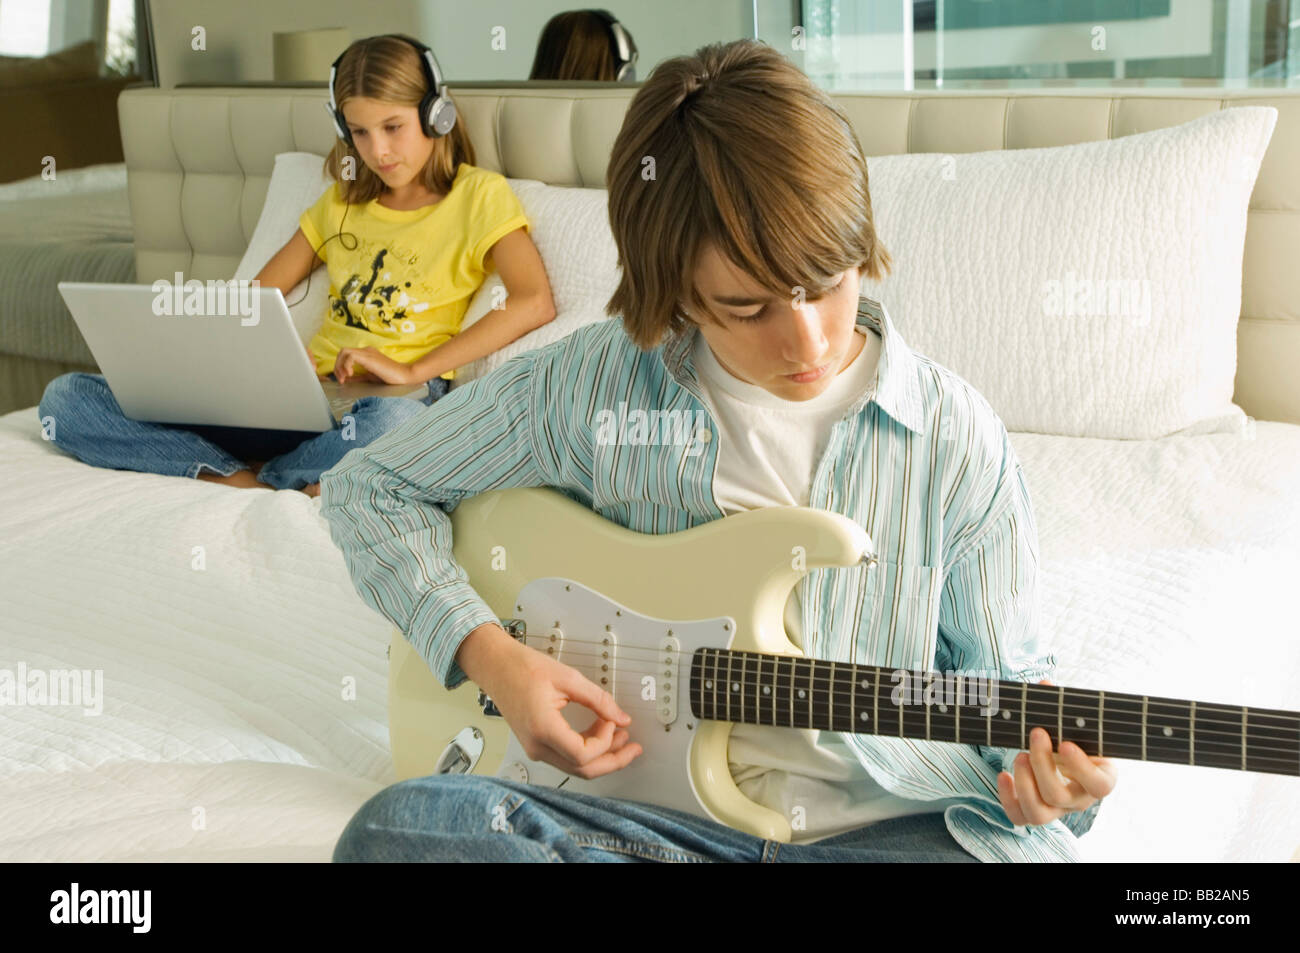 Boy playing a guitar and girl working on a laptop behind him - Stock Image